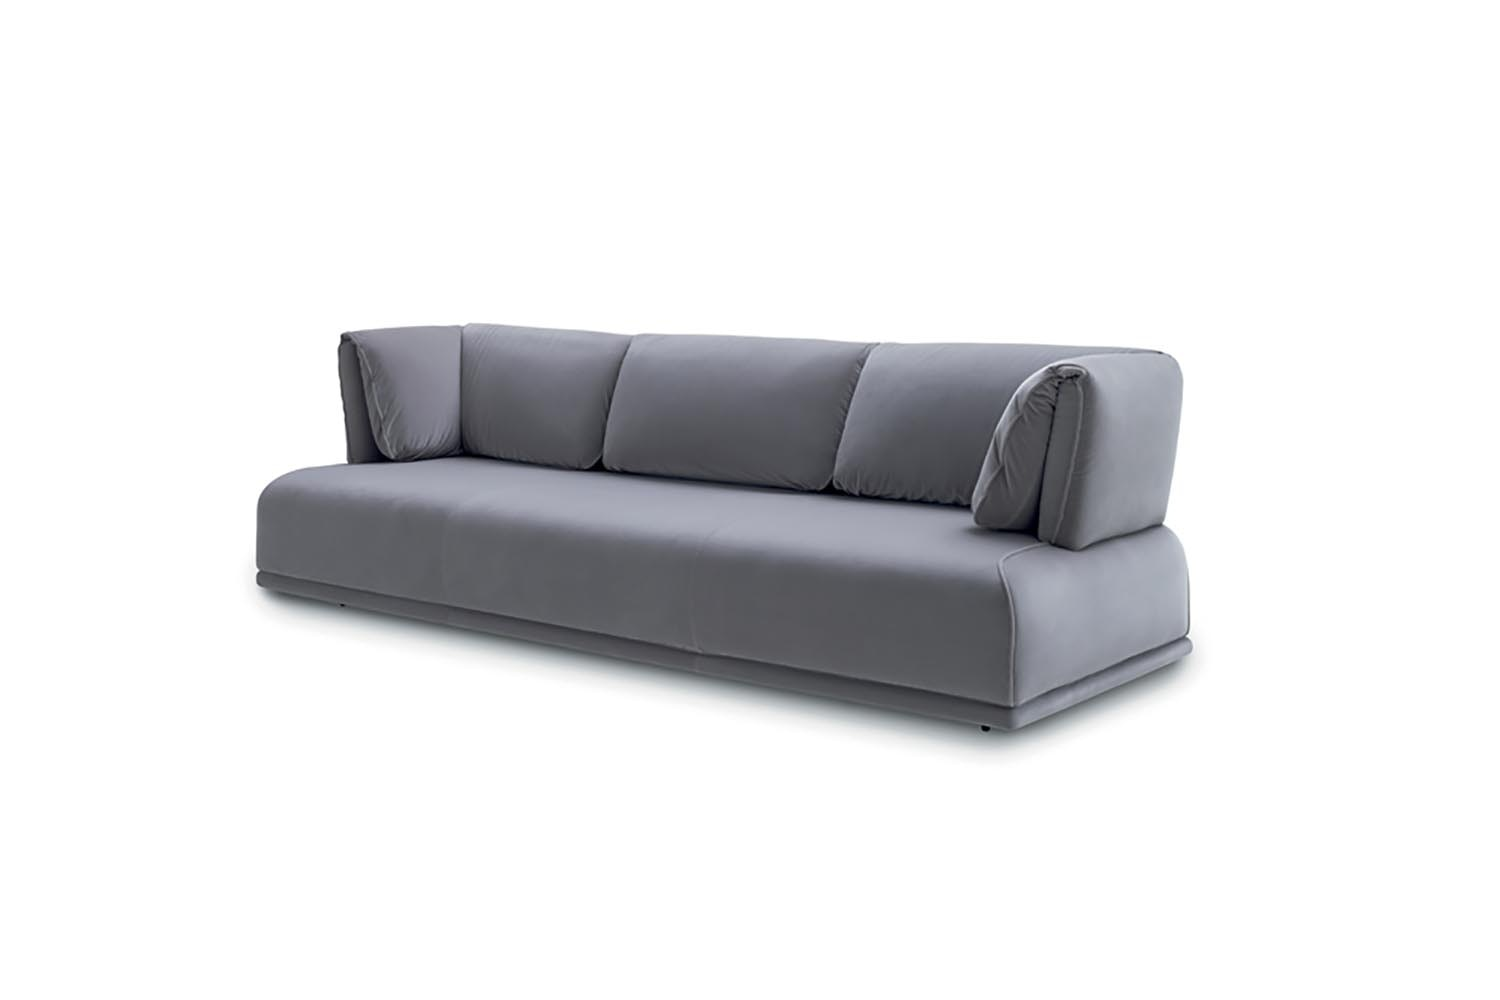 Papoose Sofa by Luca Nichetto for Arflex